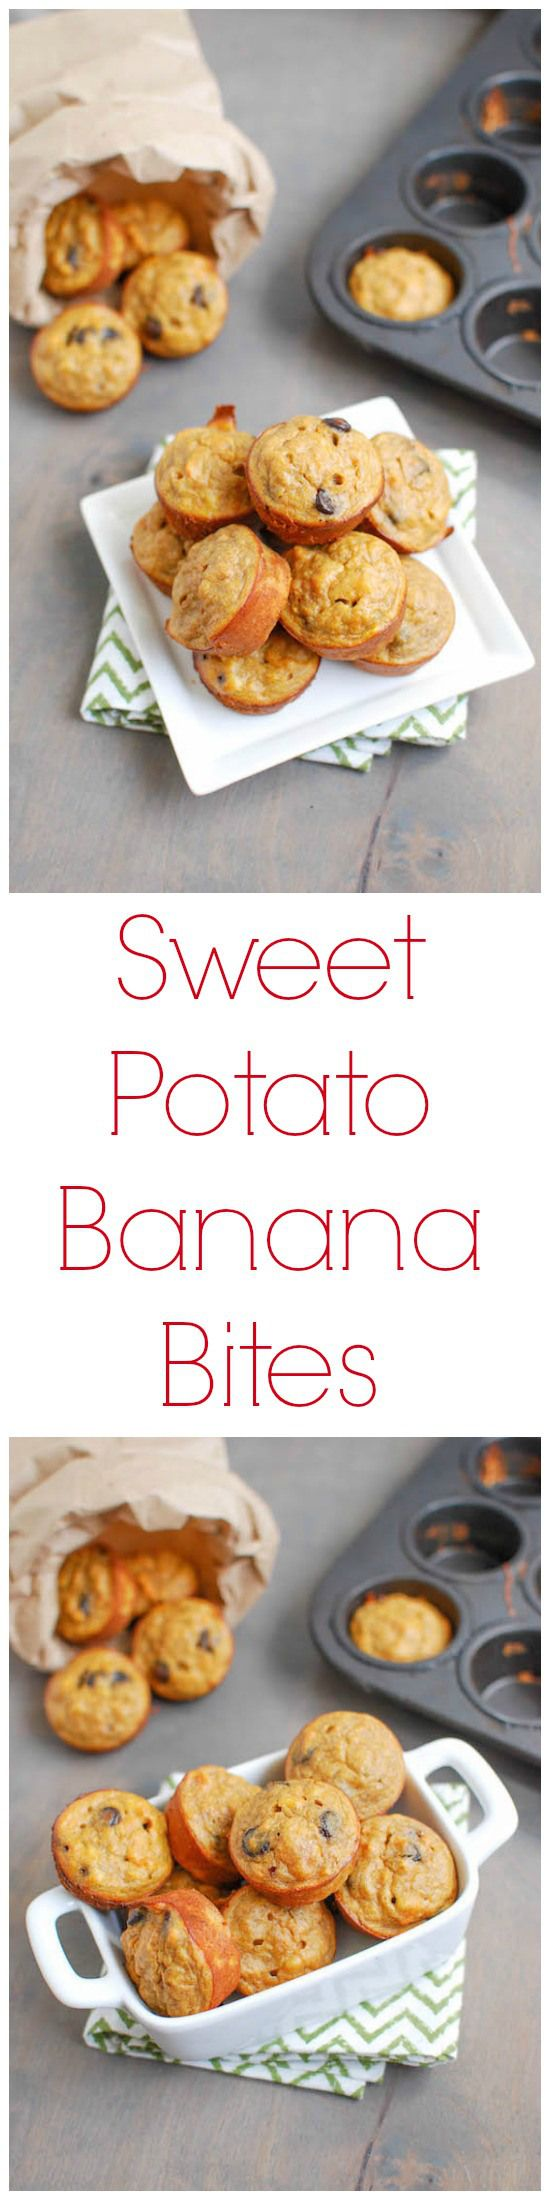 Sweet Potato Banana Bites are gluten-free and make the perfect snack for kids and adults!